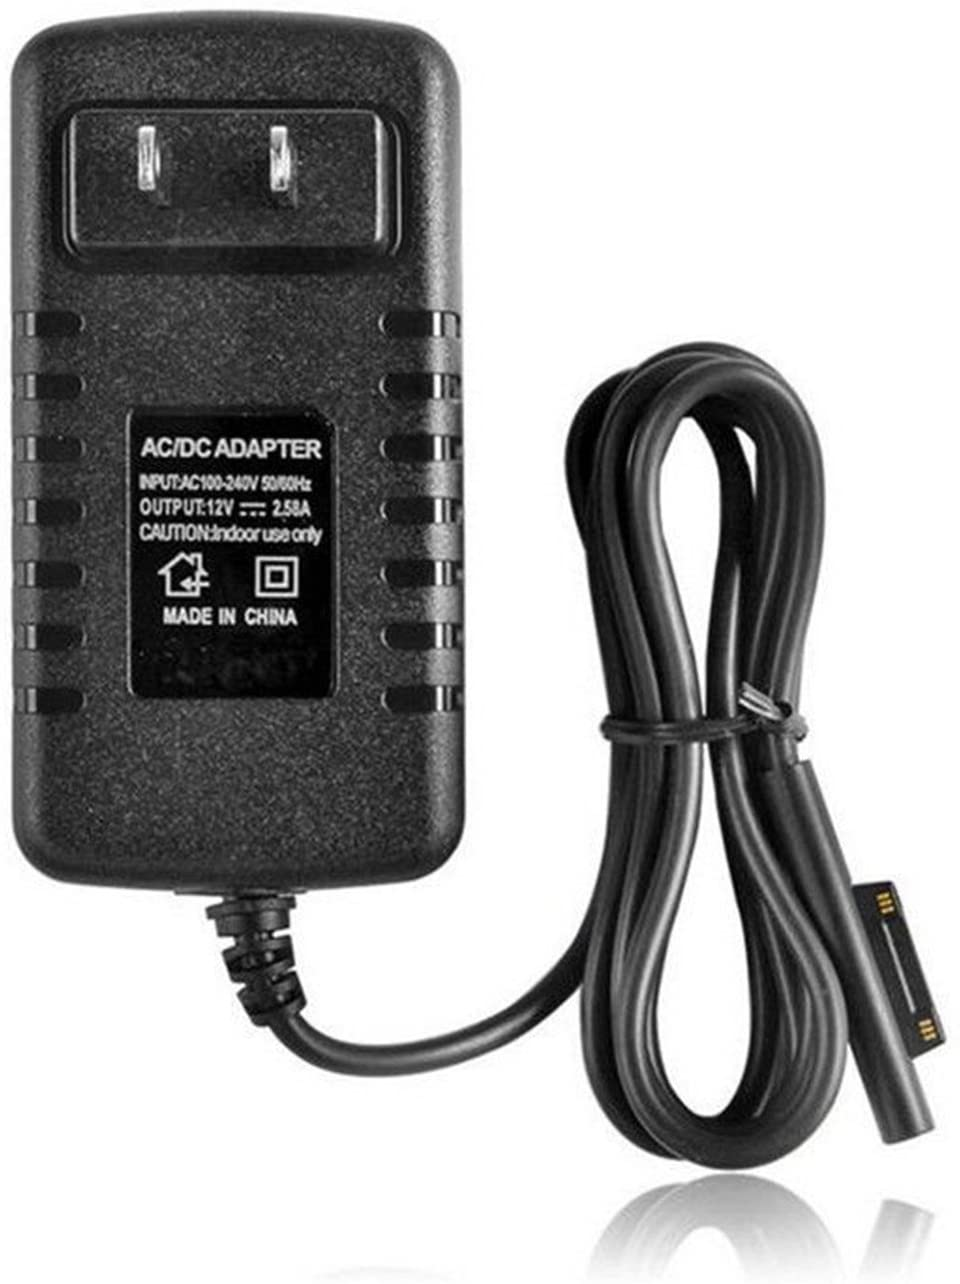 Protac Surface Power Supply Adapter 36W 12V 2.58A for Microsoft Surface Pro 3 & Pro 4 i5 i7 Tablet (Pro 3 Wall Charger)